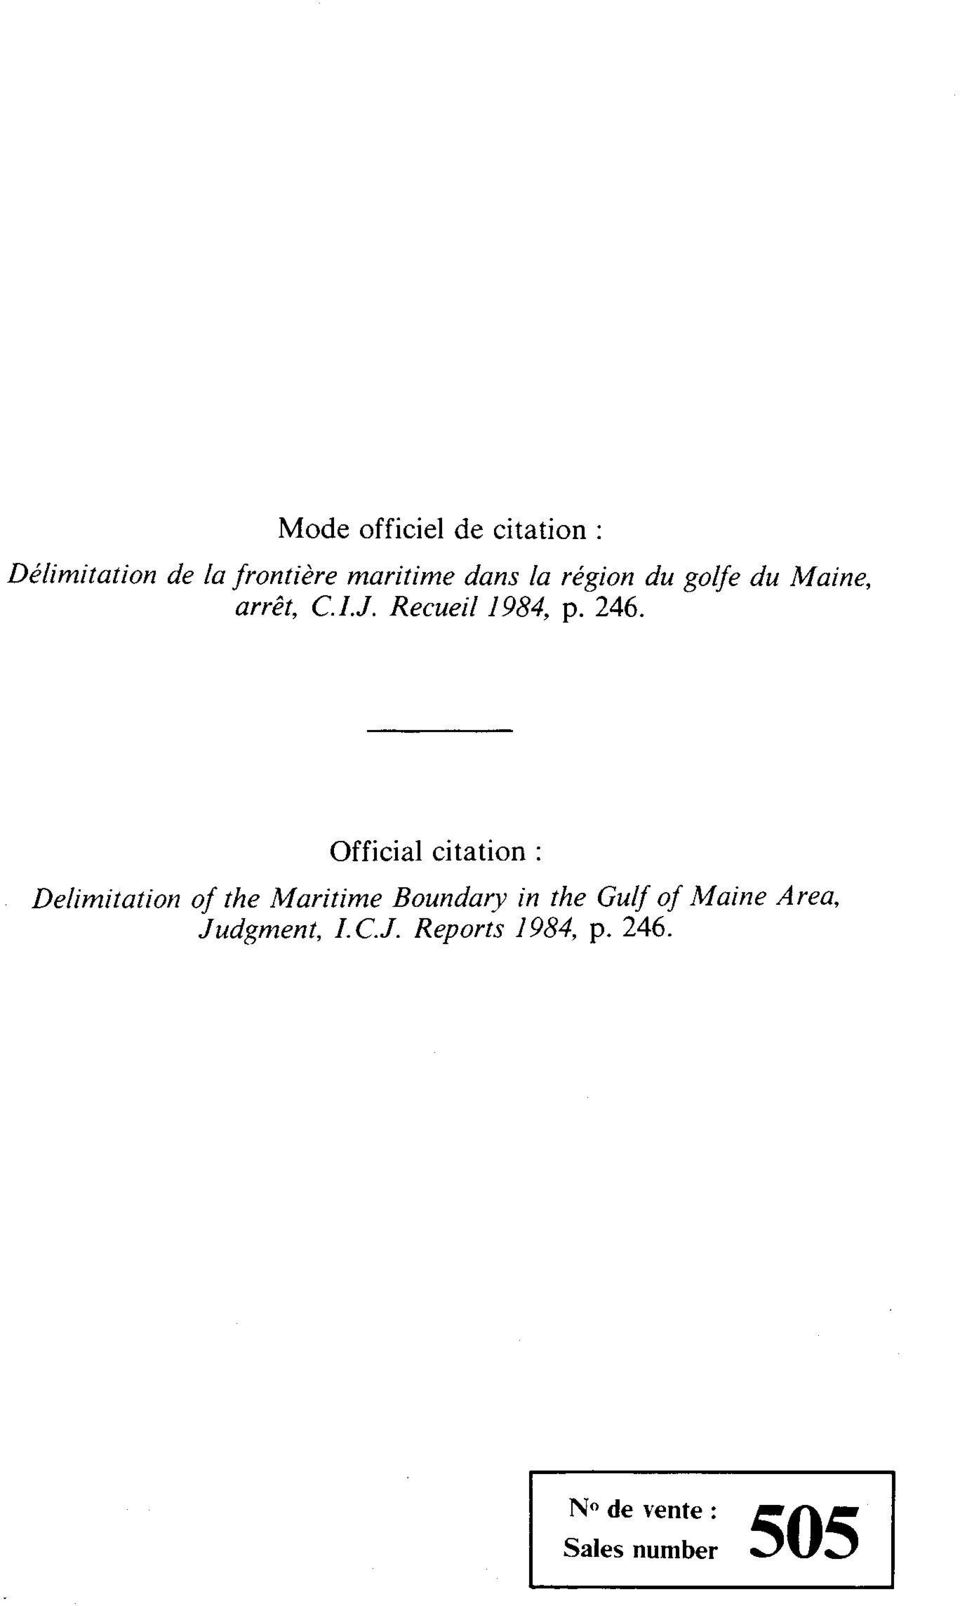 Officia1 citation : Delimitation of the Maritime Boundary in the Gulf of